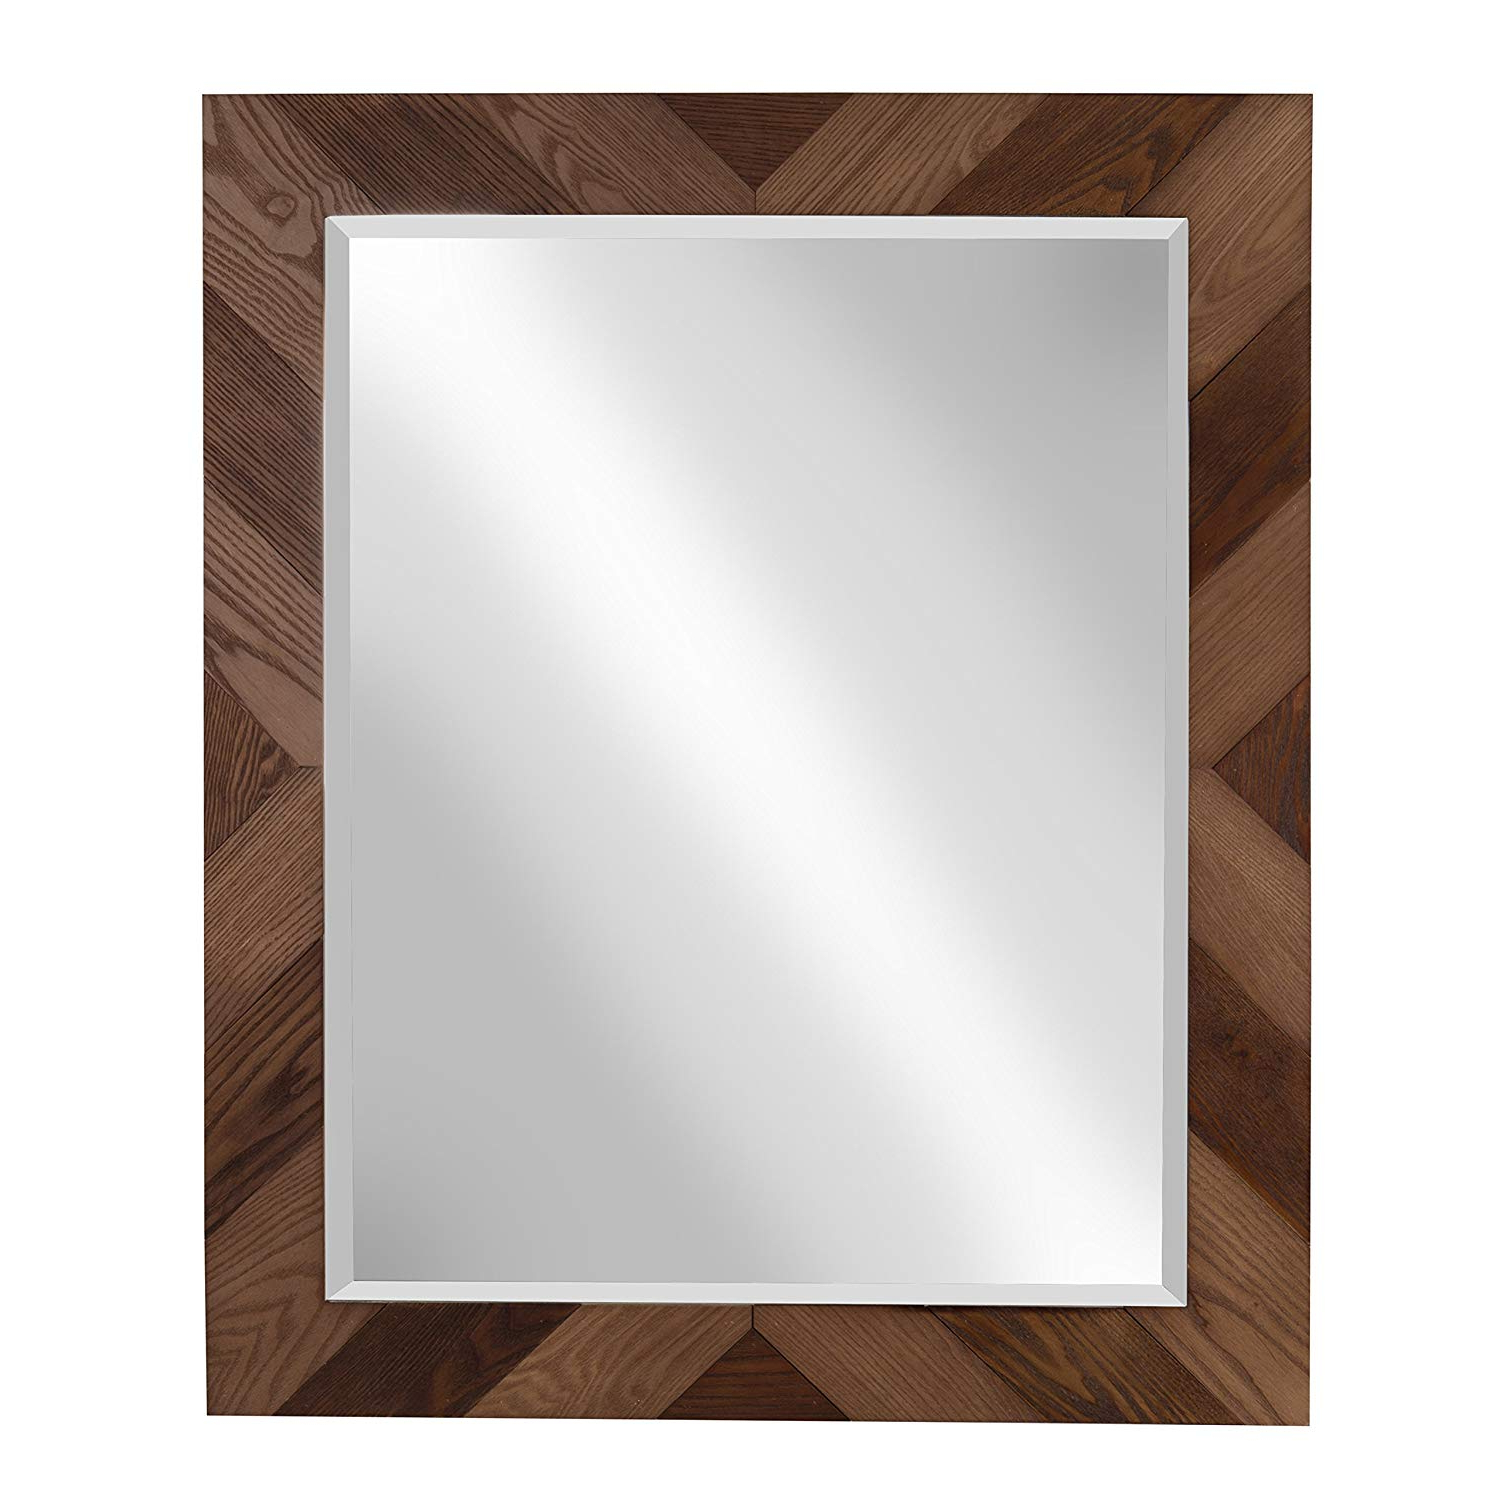 Designovation Rost Pieced Wood Framed Wall Accent Mirror, 27.5X33.5, Brown With Regard To Widely Used Wood Accent Mirrors (Gallery 8 of 20)